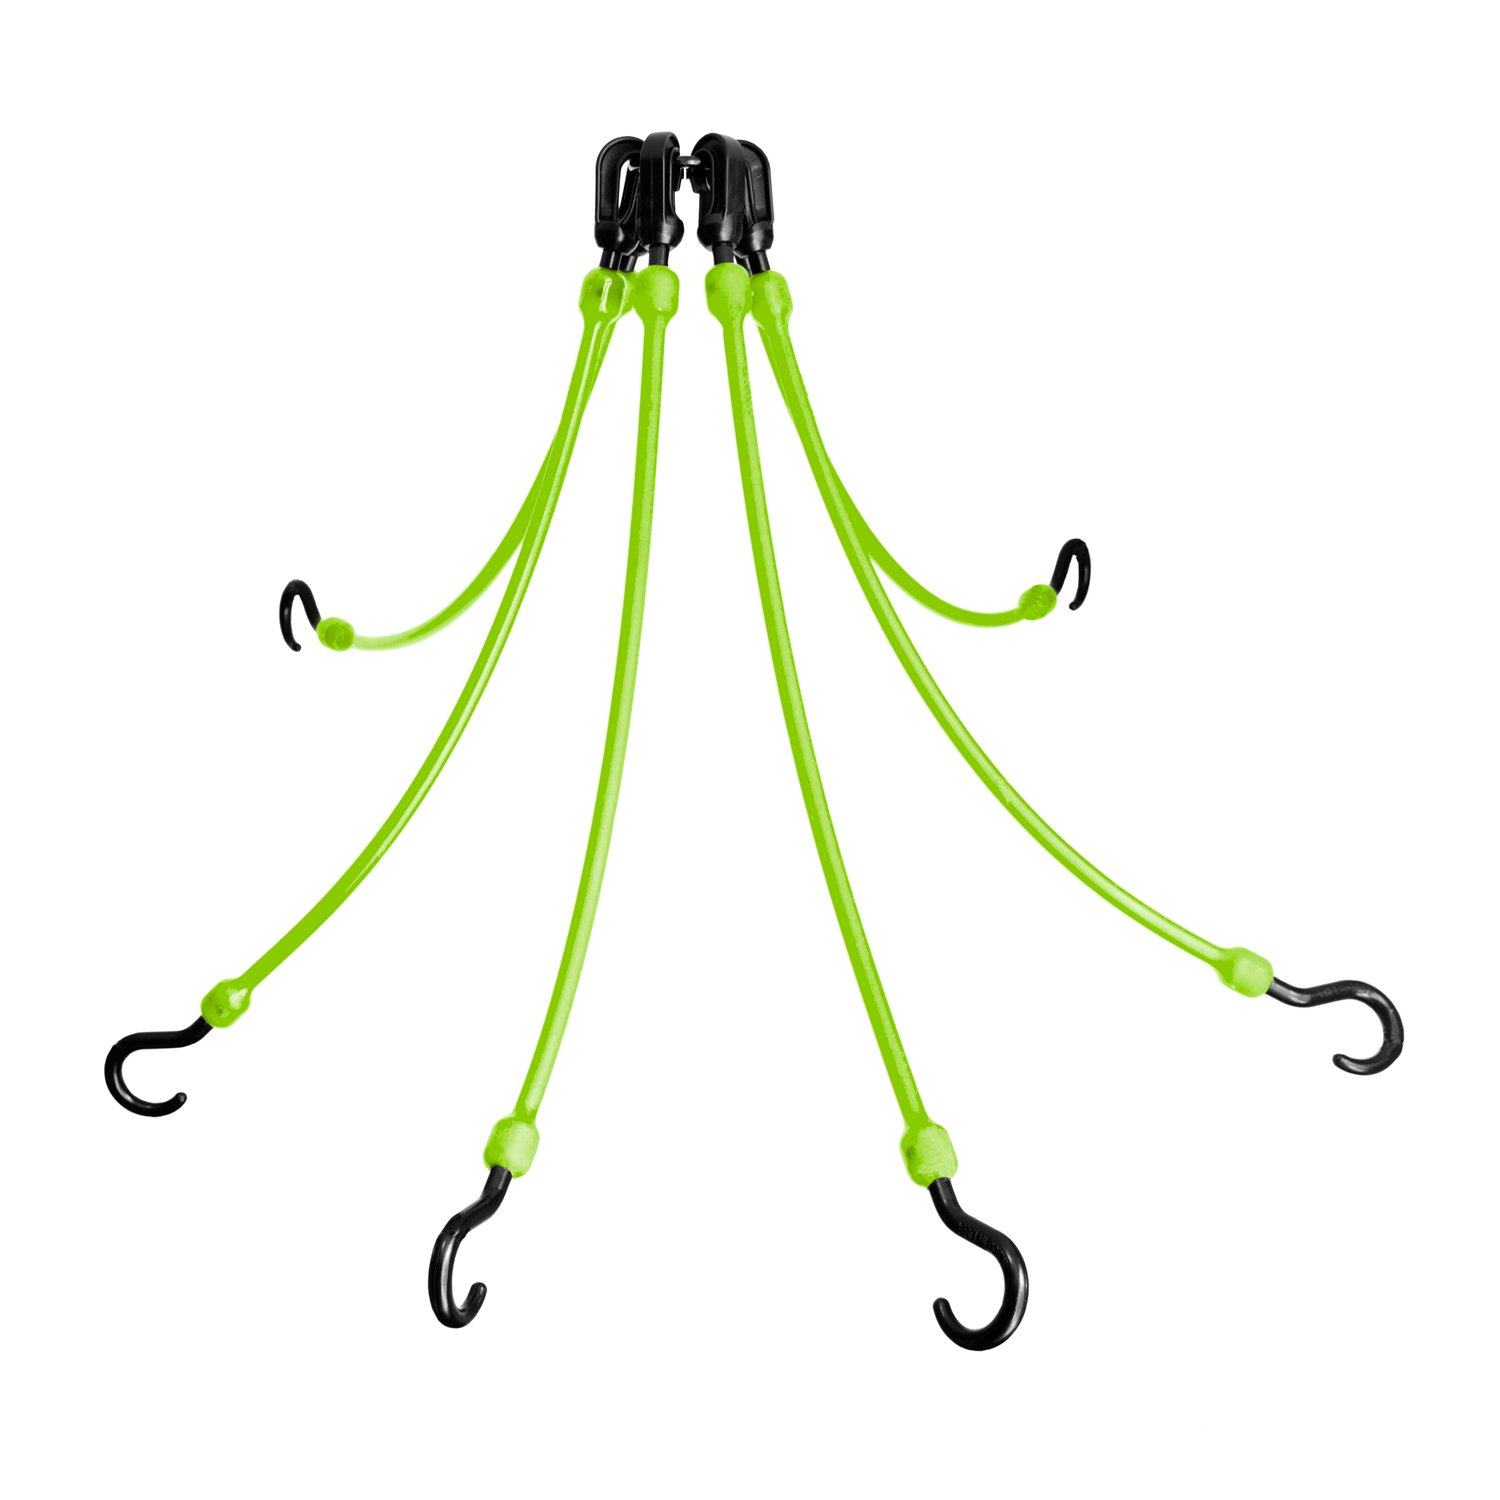 The Perfect Bungee 6-Arm 18-Inch Flex Web, Safety Green